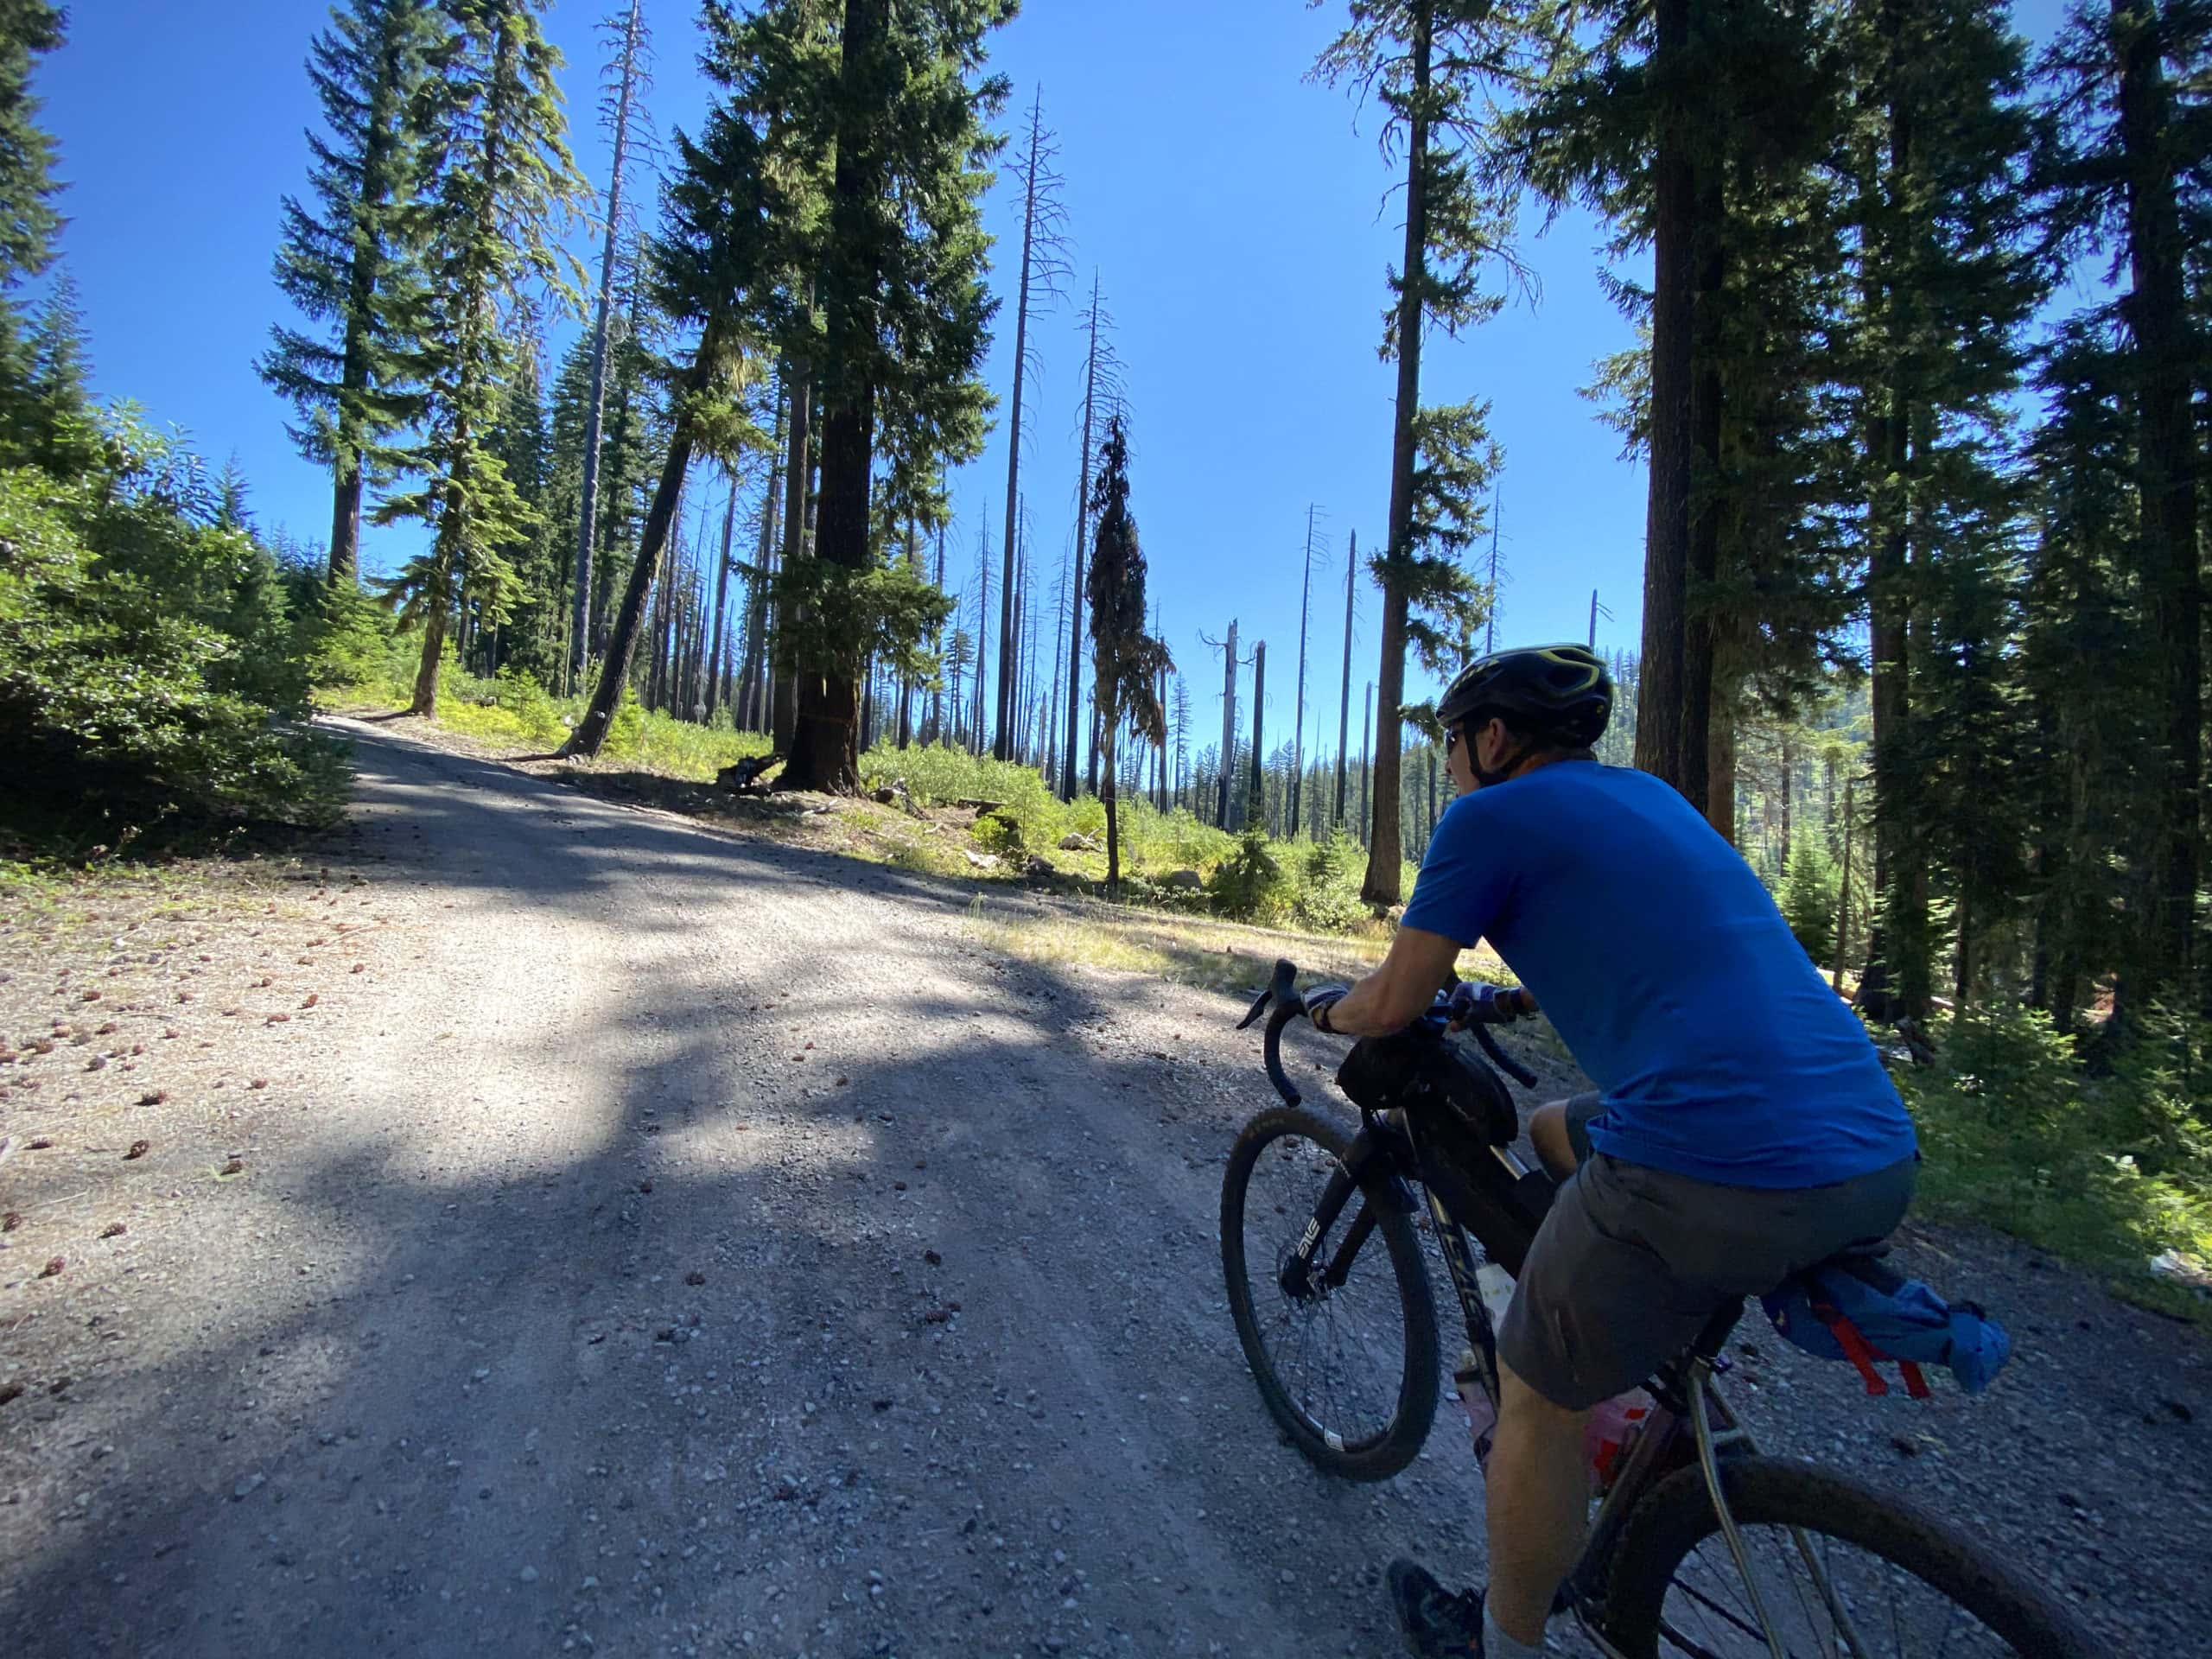 Gravel cyclist climbing up steep pitch through forest in the Umpqua National Forest.